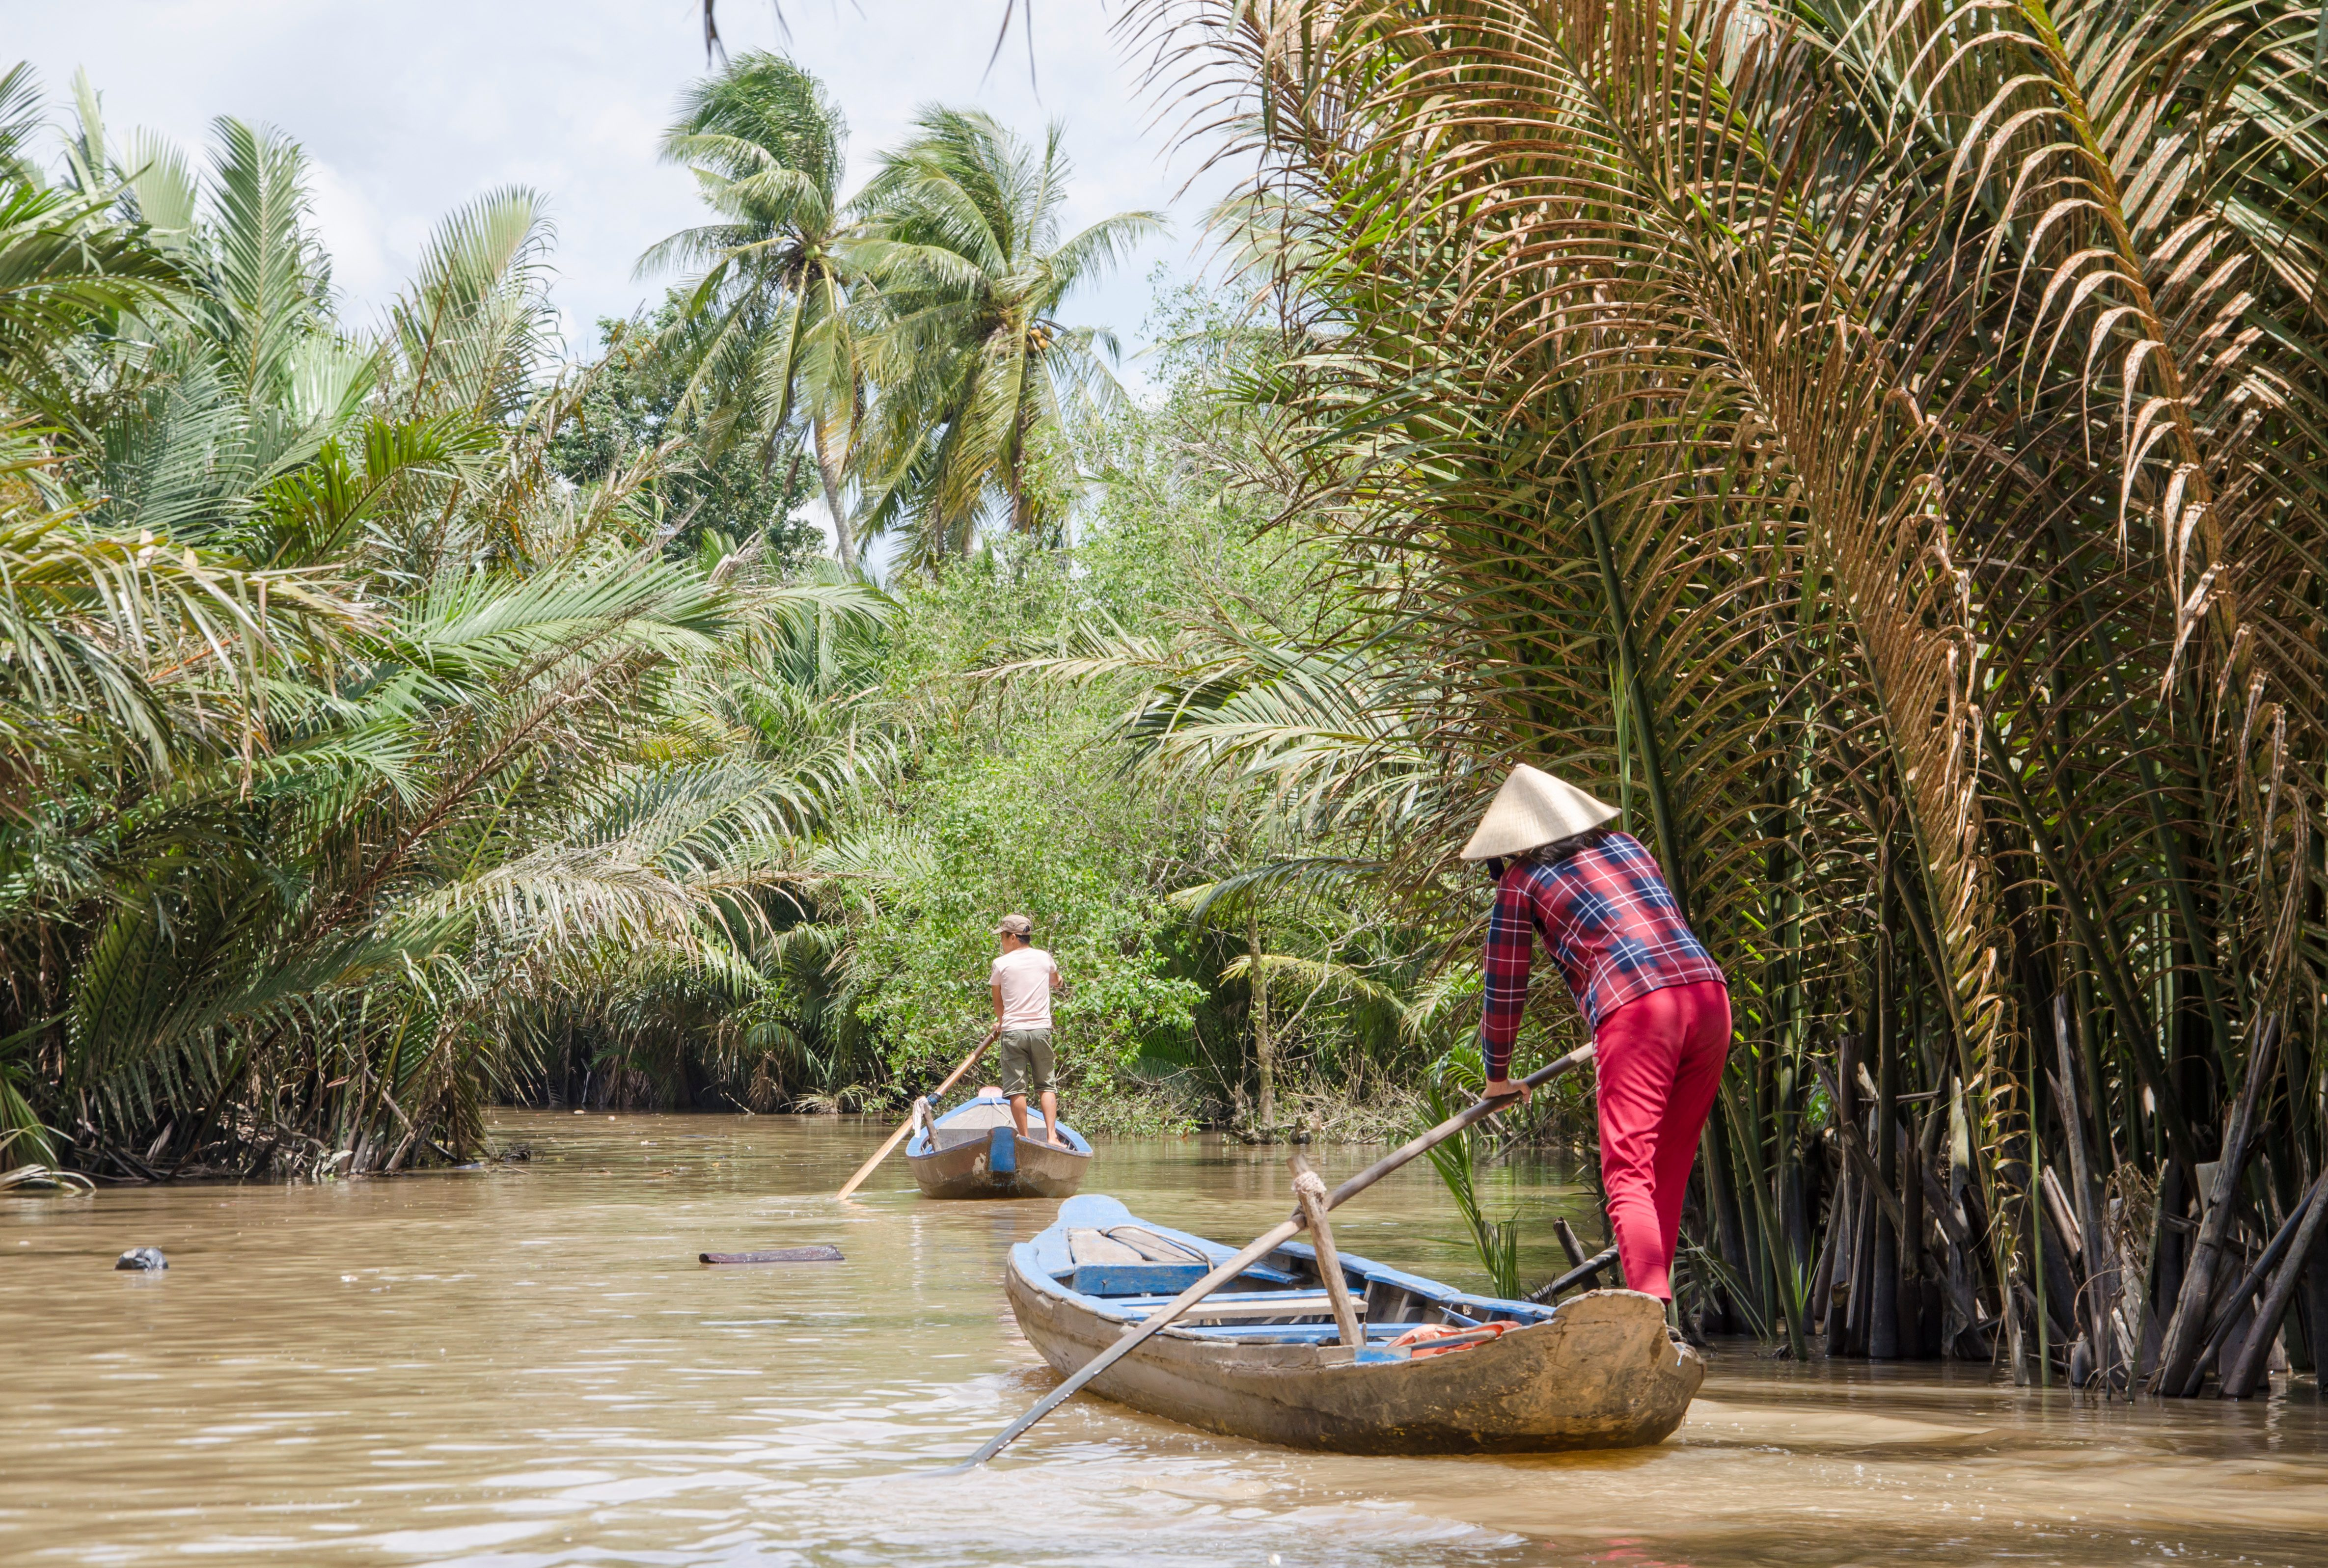 The fight is on: international efforts to save the Mekong Delta